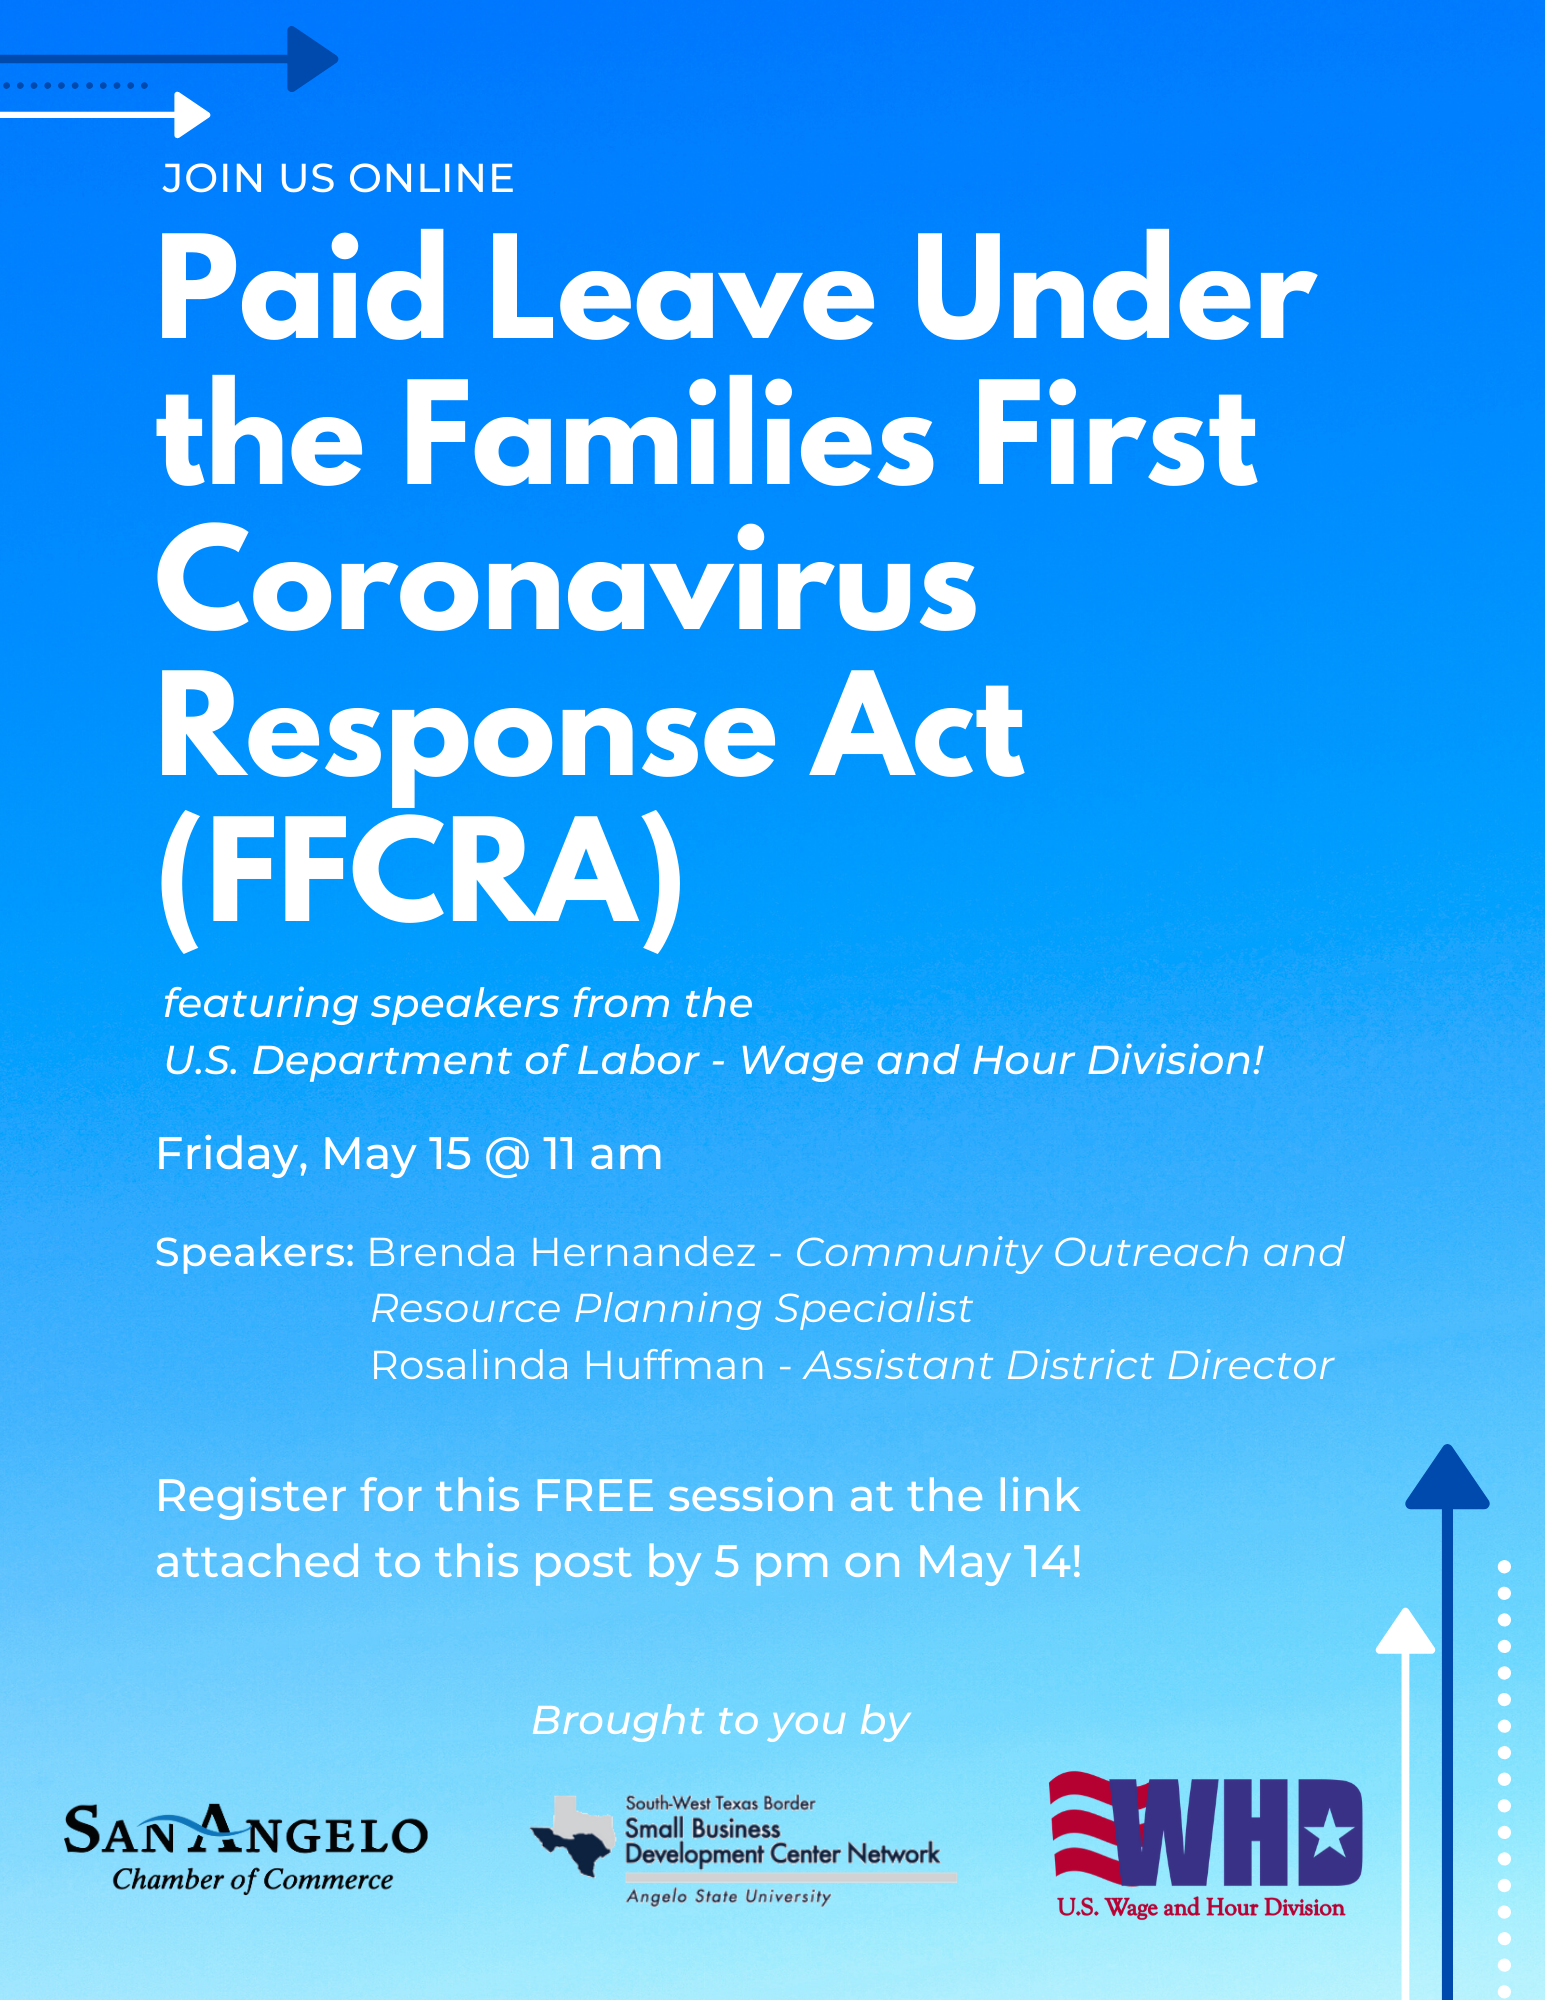 Paid Leave and FFCRA Webinar Flyer